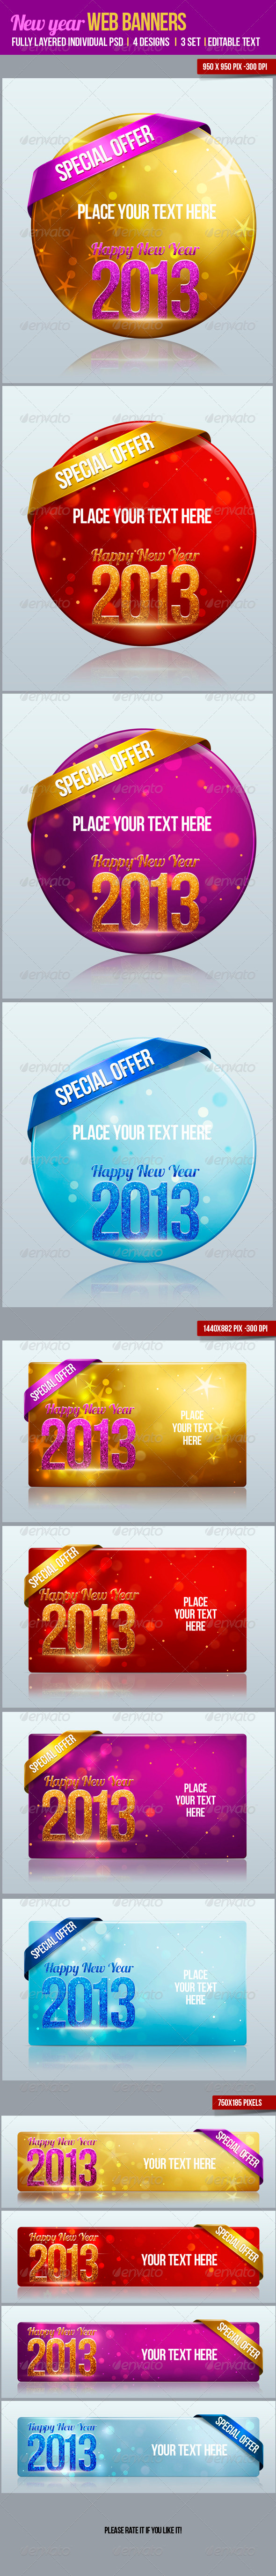 New Year Web Banners - Banners & Ads Web Elements